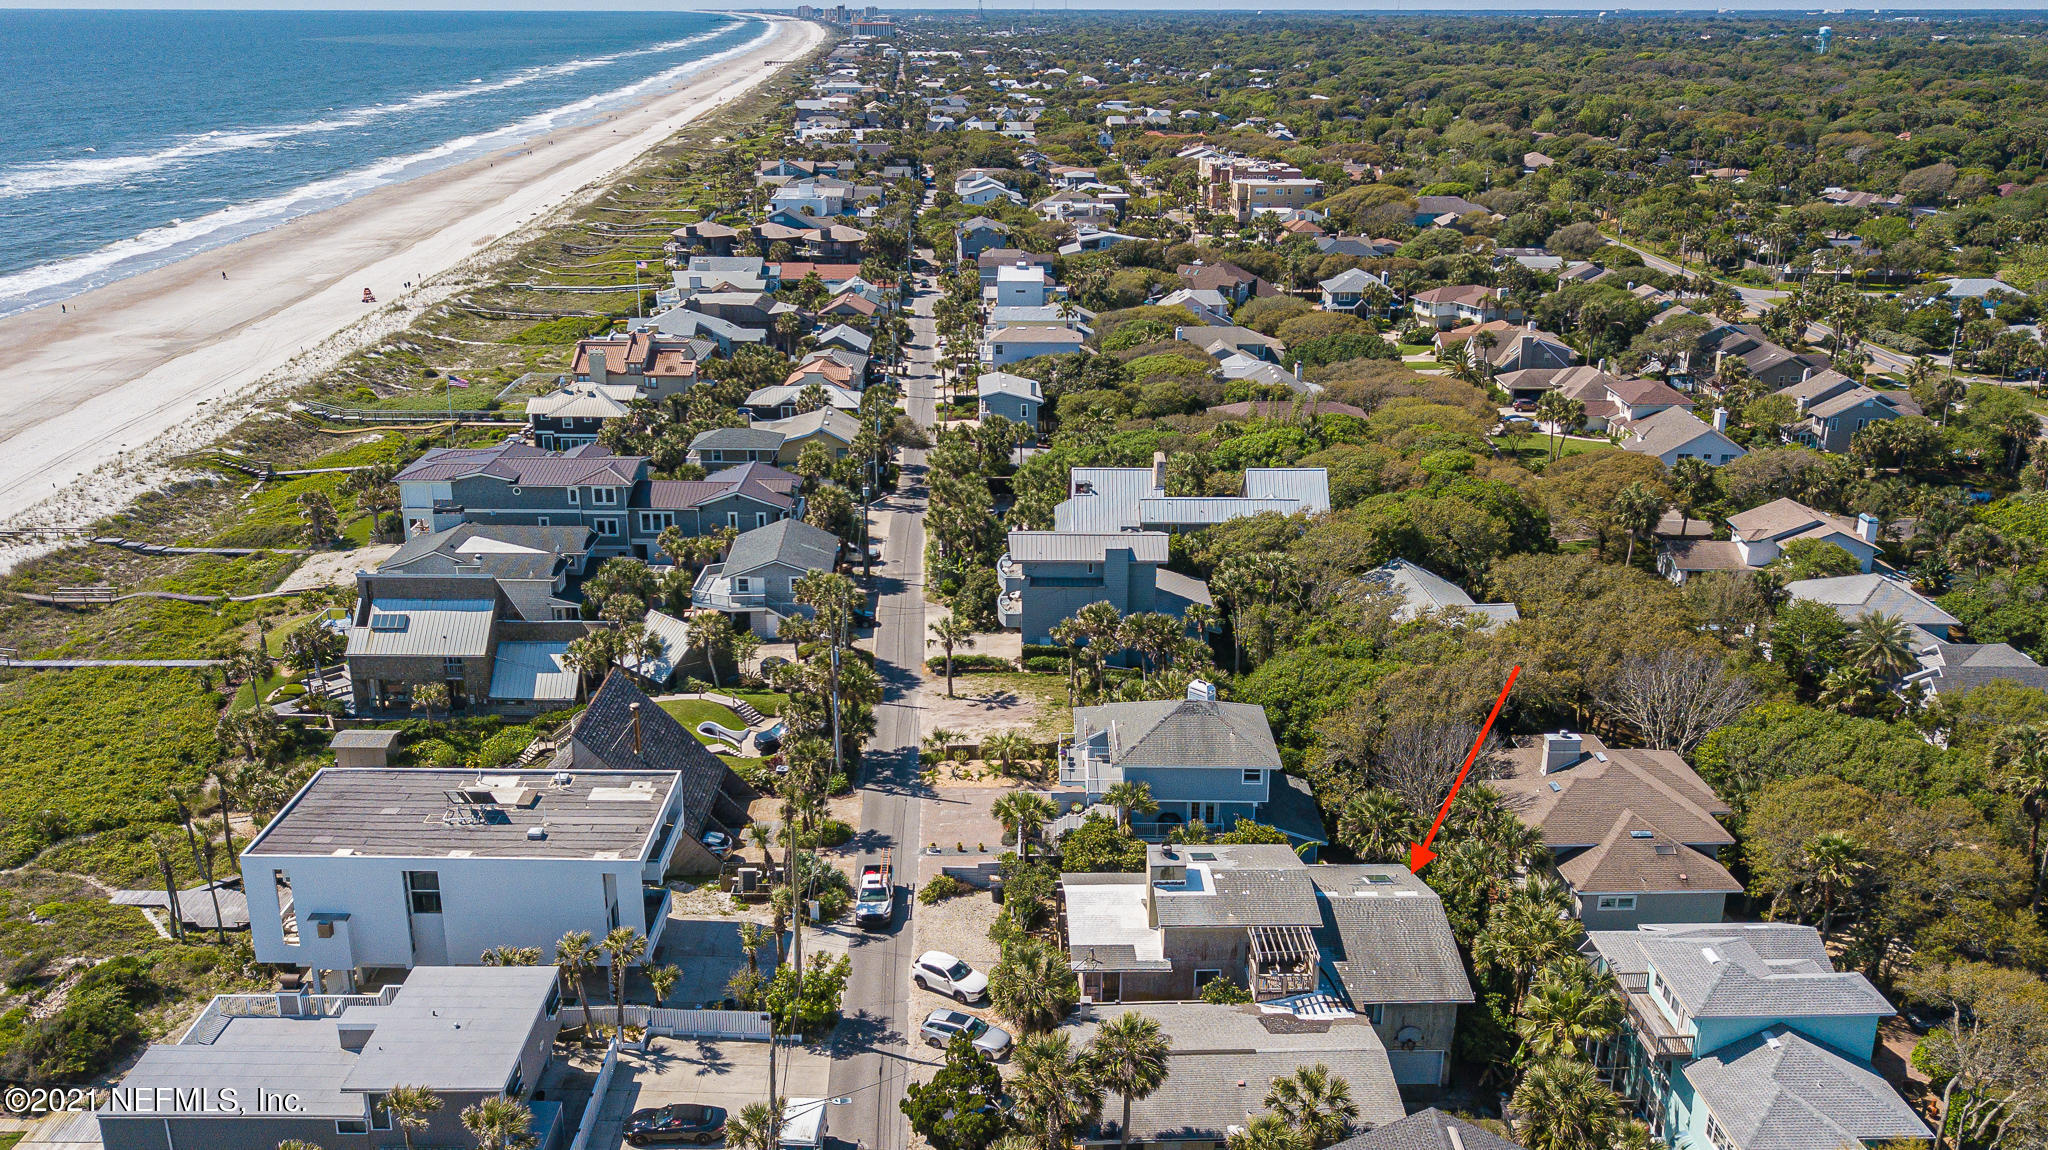 This amazing ocean view property sits near the highest point in Atlantic Beach. Walk to one of the easiest beach accesses in Atlantic Beach, 19th St. which is steps from your front door. Enjoy coffee and sunrises over the ocean from the balcony on the front house. It's a short bike ride to Beaches Town Center or Atlantic Beach Country Club.Property consists of two 3 bedroom, 2 bath homes, one 1 bedroom apartment, and an efficiency apartment. The largest unit has a two car garage. The other 3/2 has a 1 car garage. Live in one unit and keep the other 3 as rentals or build your dream home on this 100X100 lot with ocean views! 4 units currently rented with leases that expire in June 2022 There is a 60 day notice for tenants to exit.  See documents for list of appliances and appraisal.